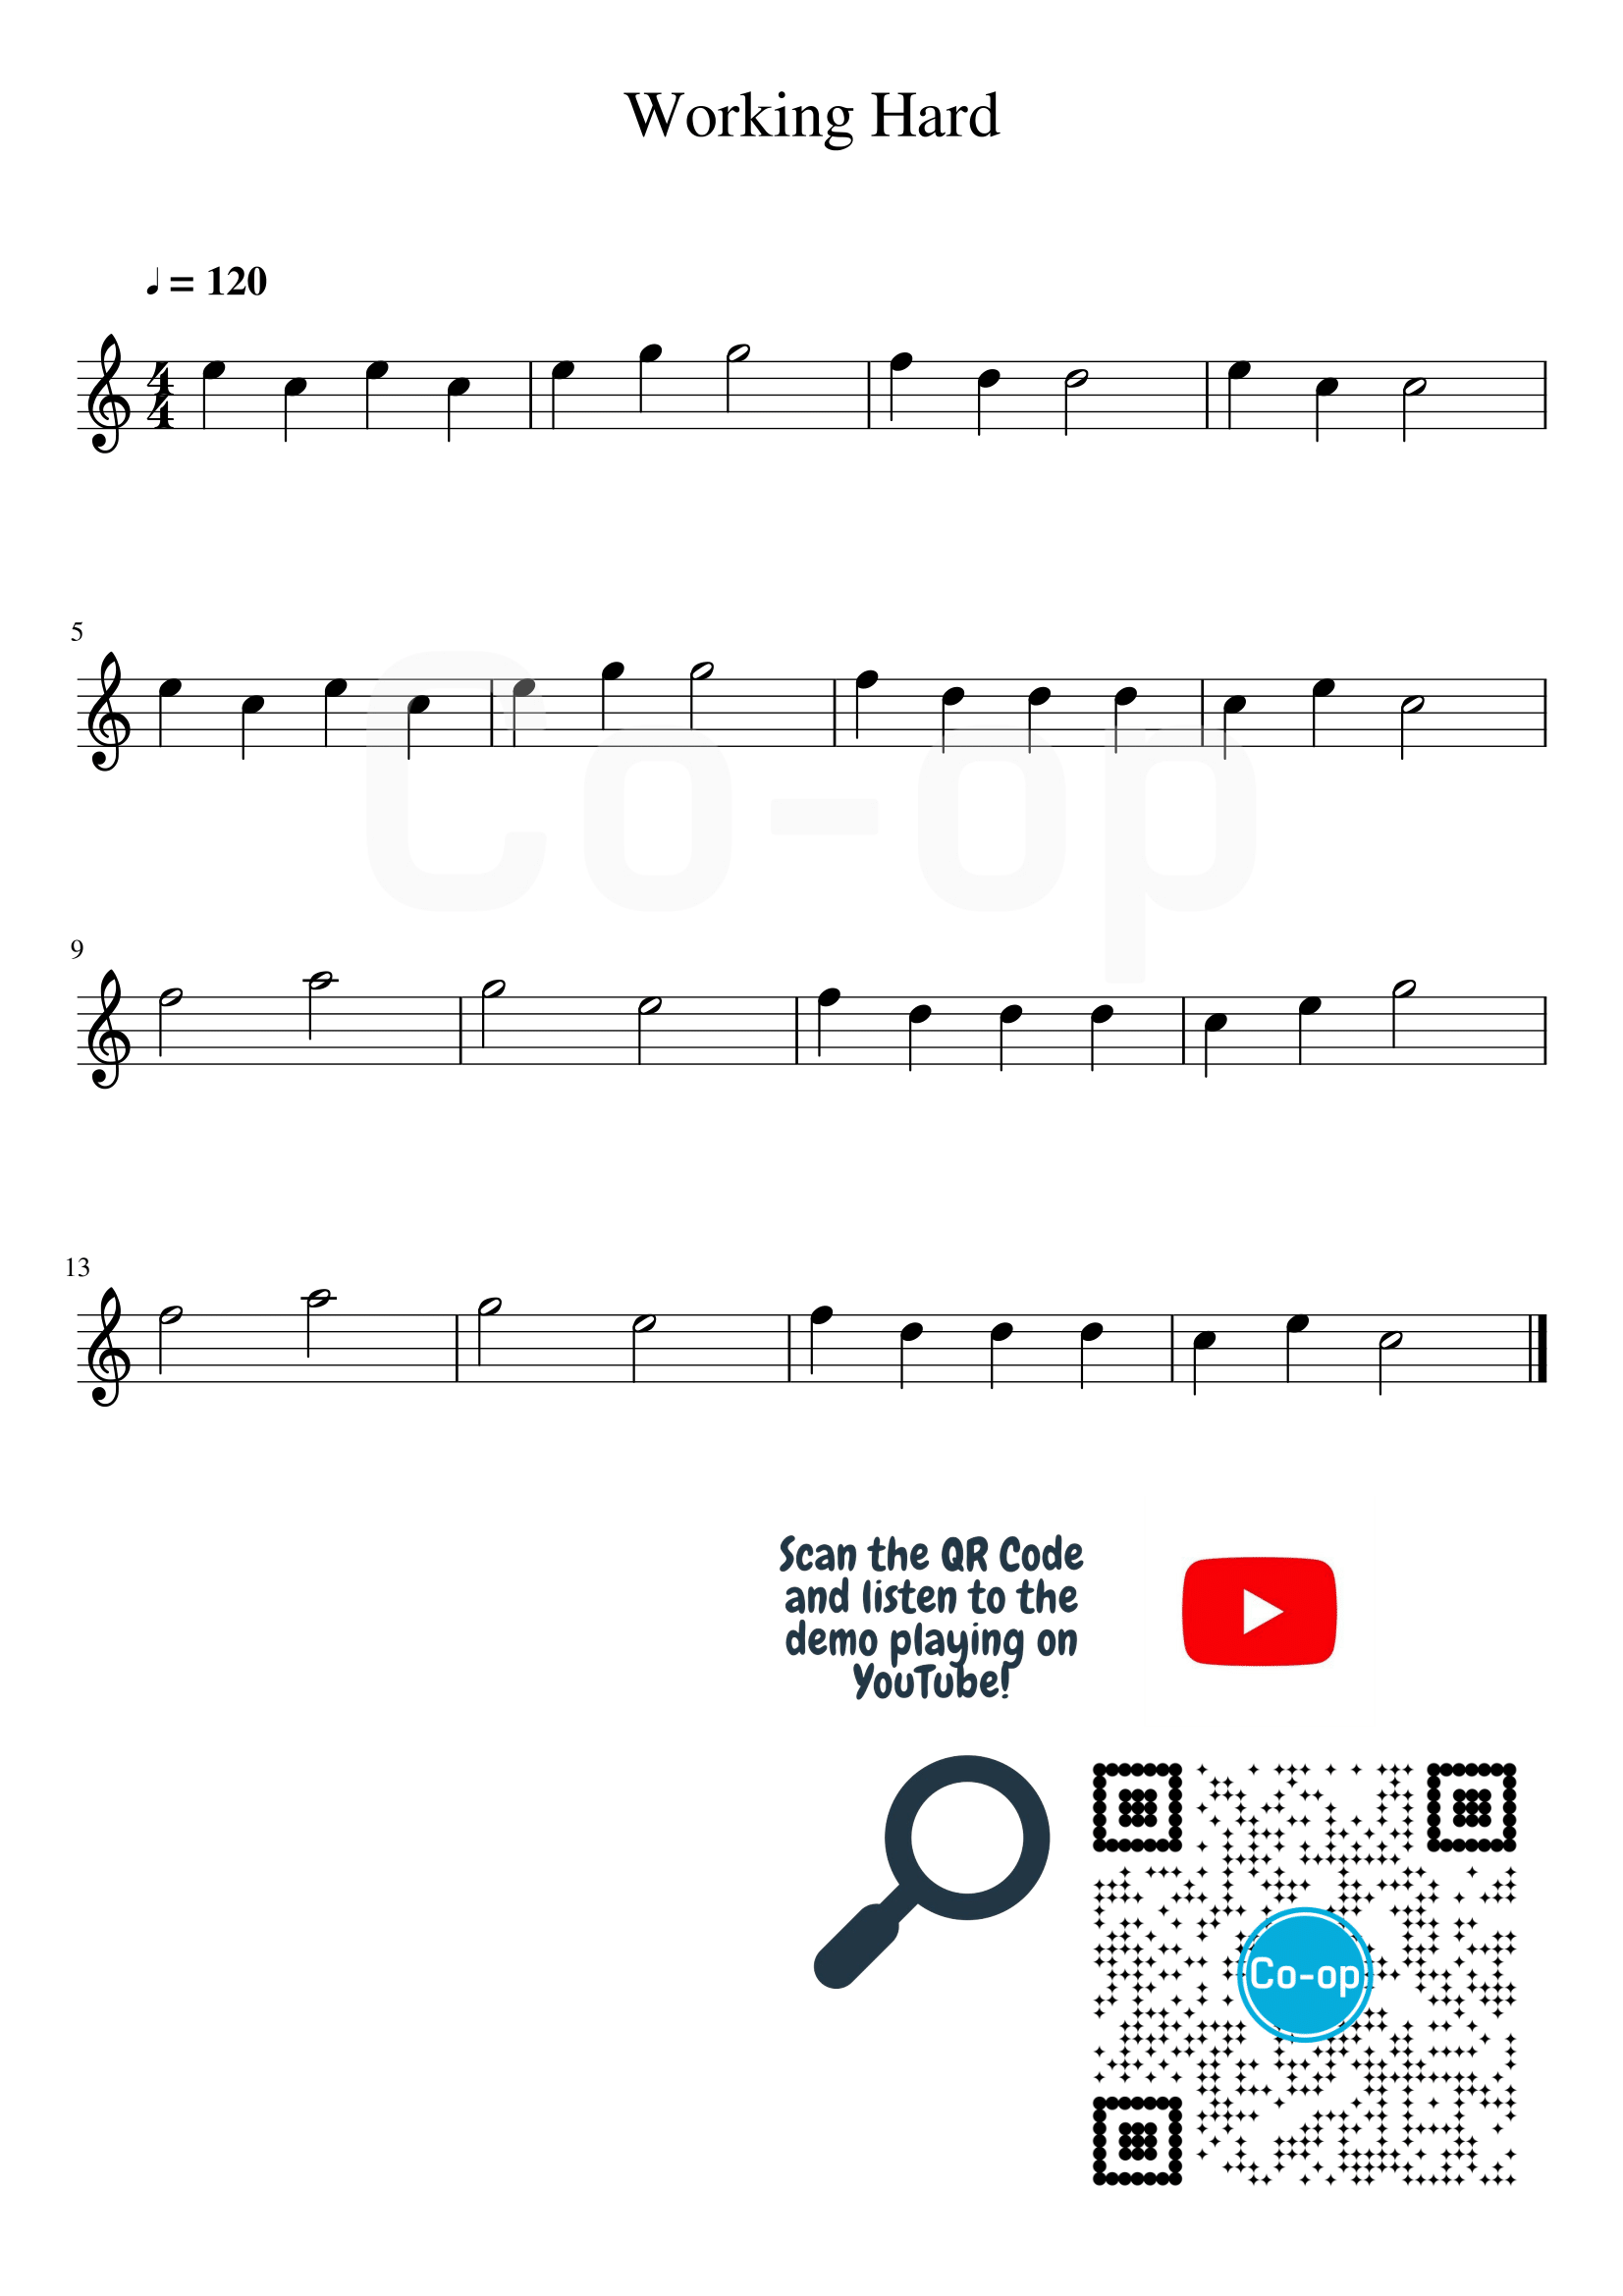 Working Hard | Staff Notation | Free Sheet Music